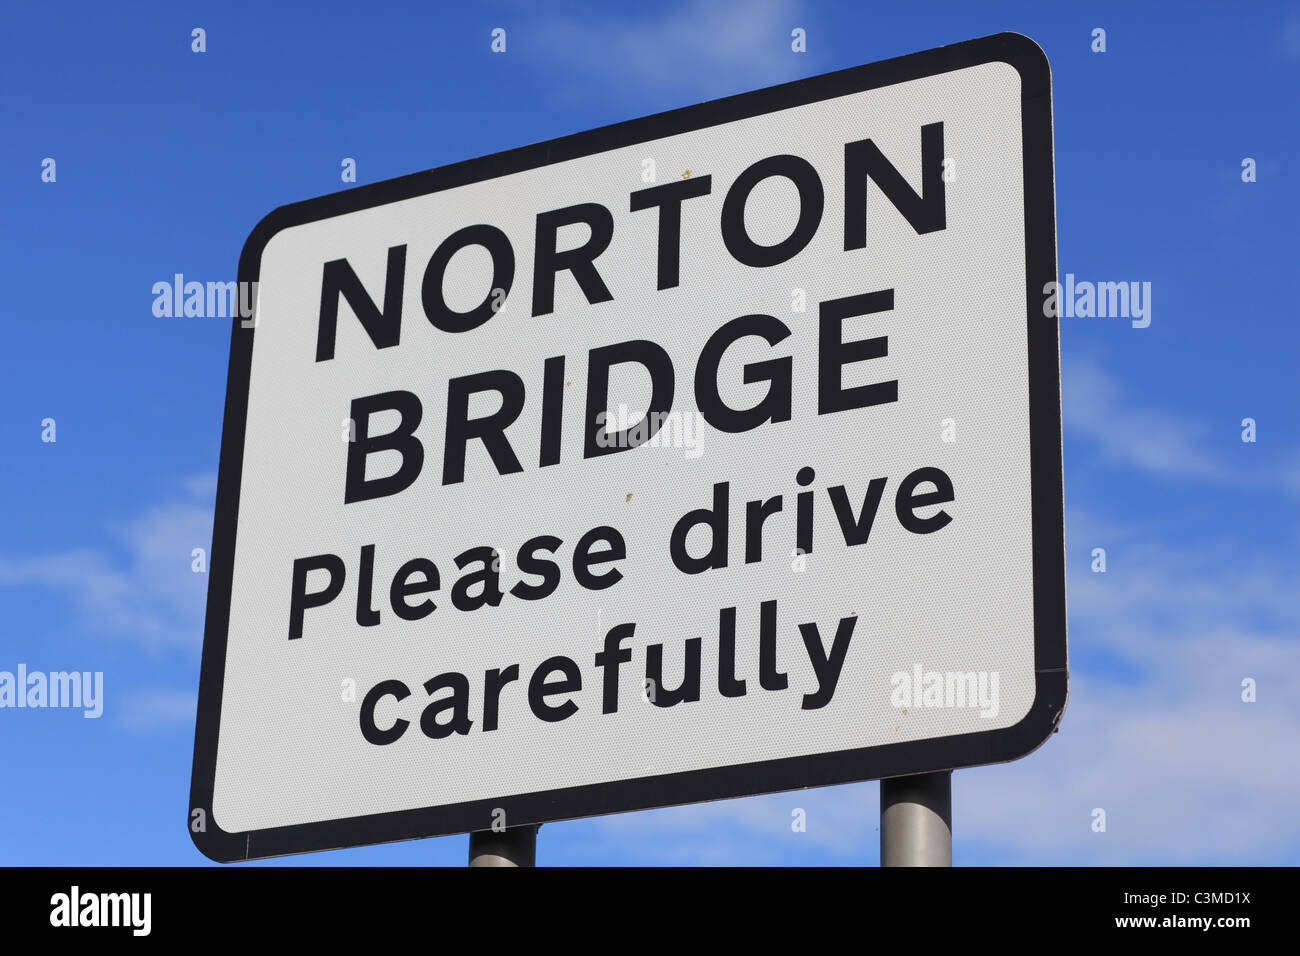 Norton Bridge in Staffordshire, England, location for a new high speed rail flyover for the West Coast line - Stock Image